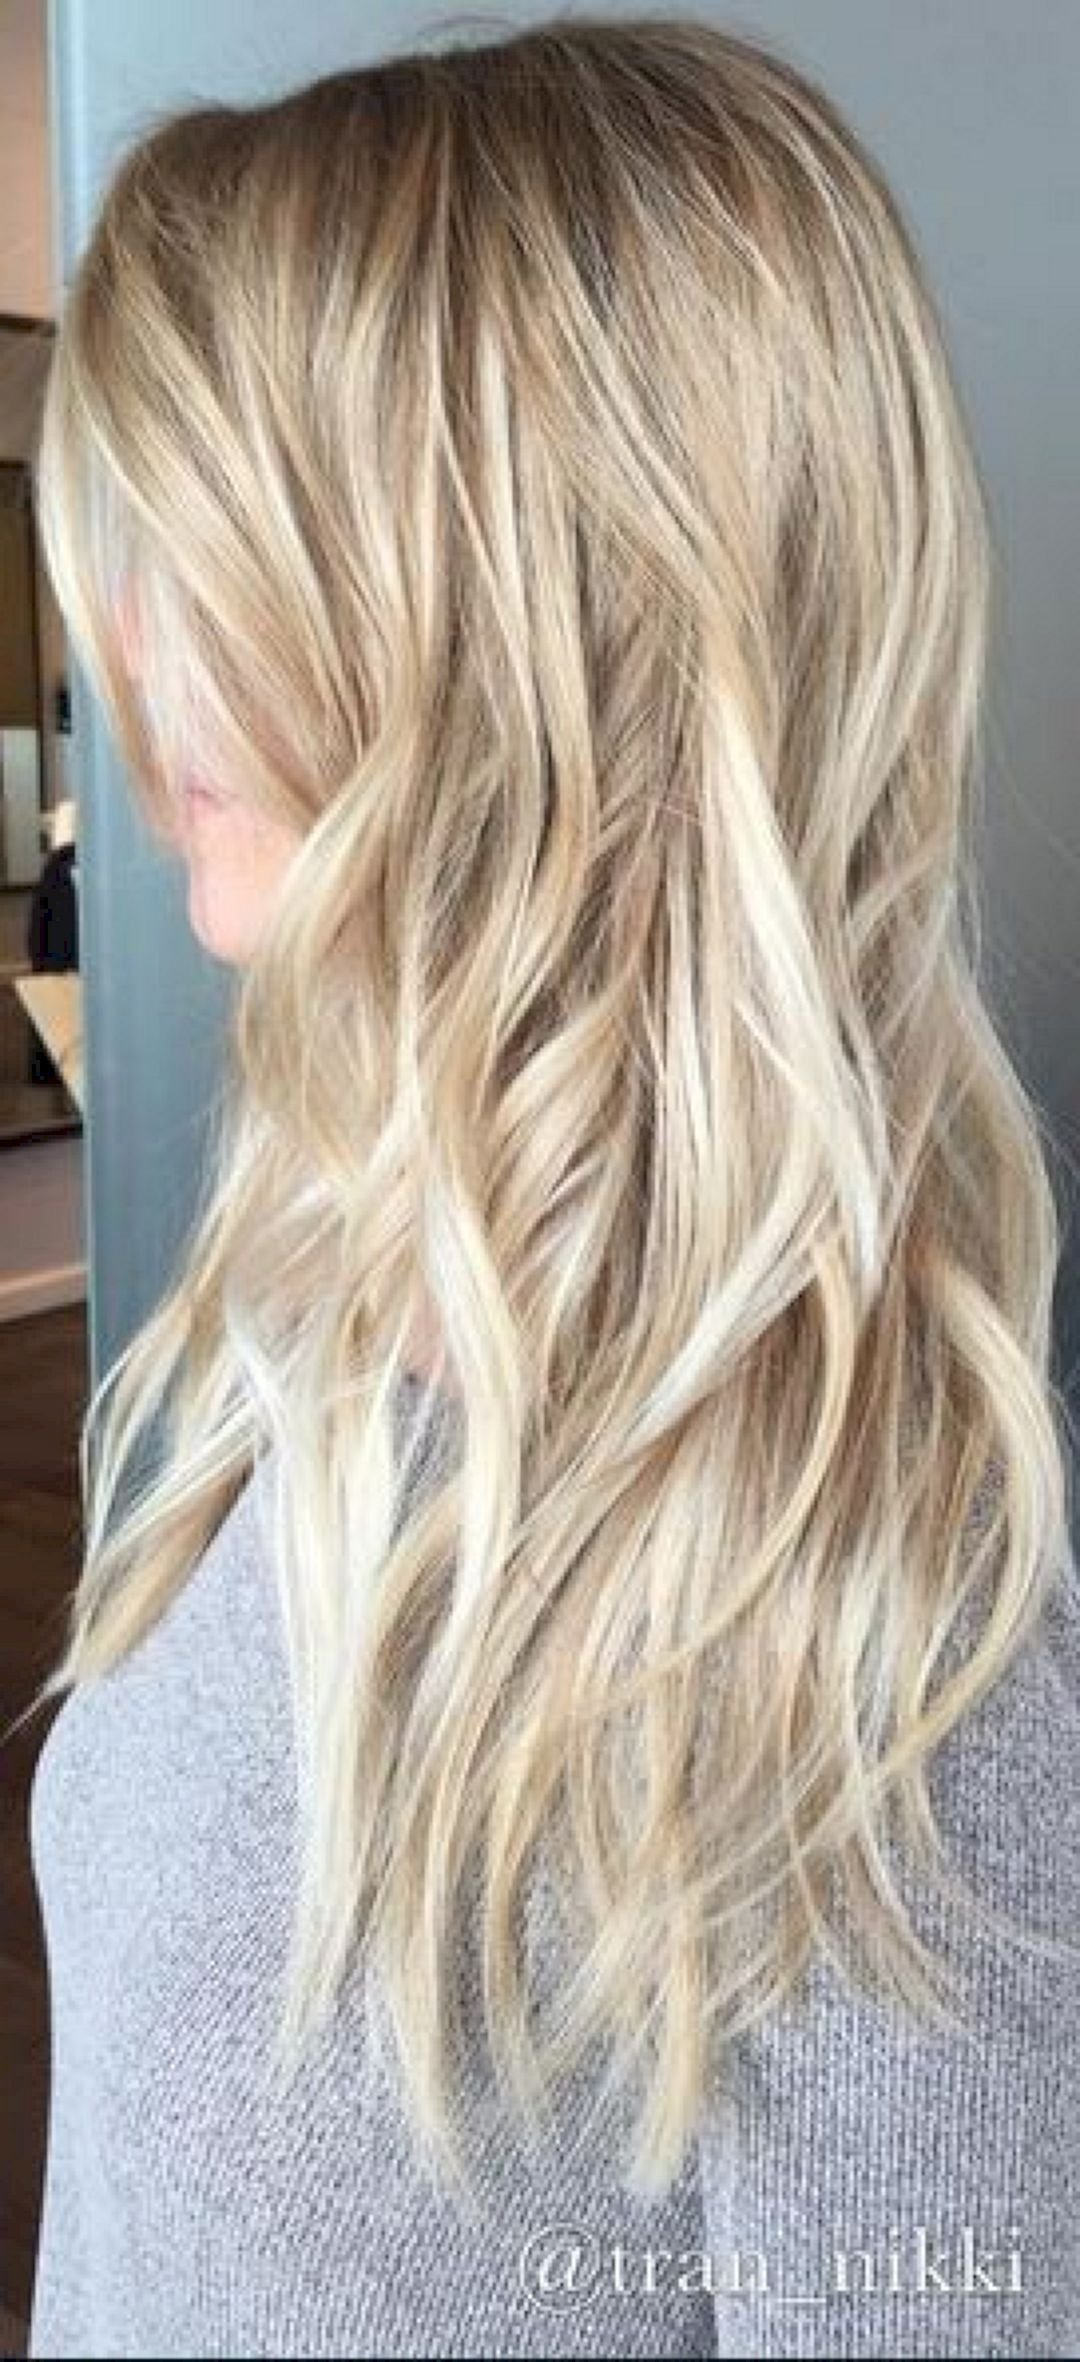 10 Lovely Cool Blonde Hair Color Ideas 230 stunning blonde hair color ideas you have got to see and try 1 2020